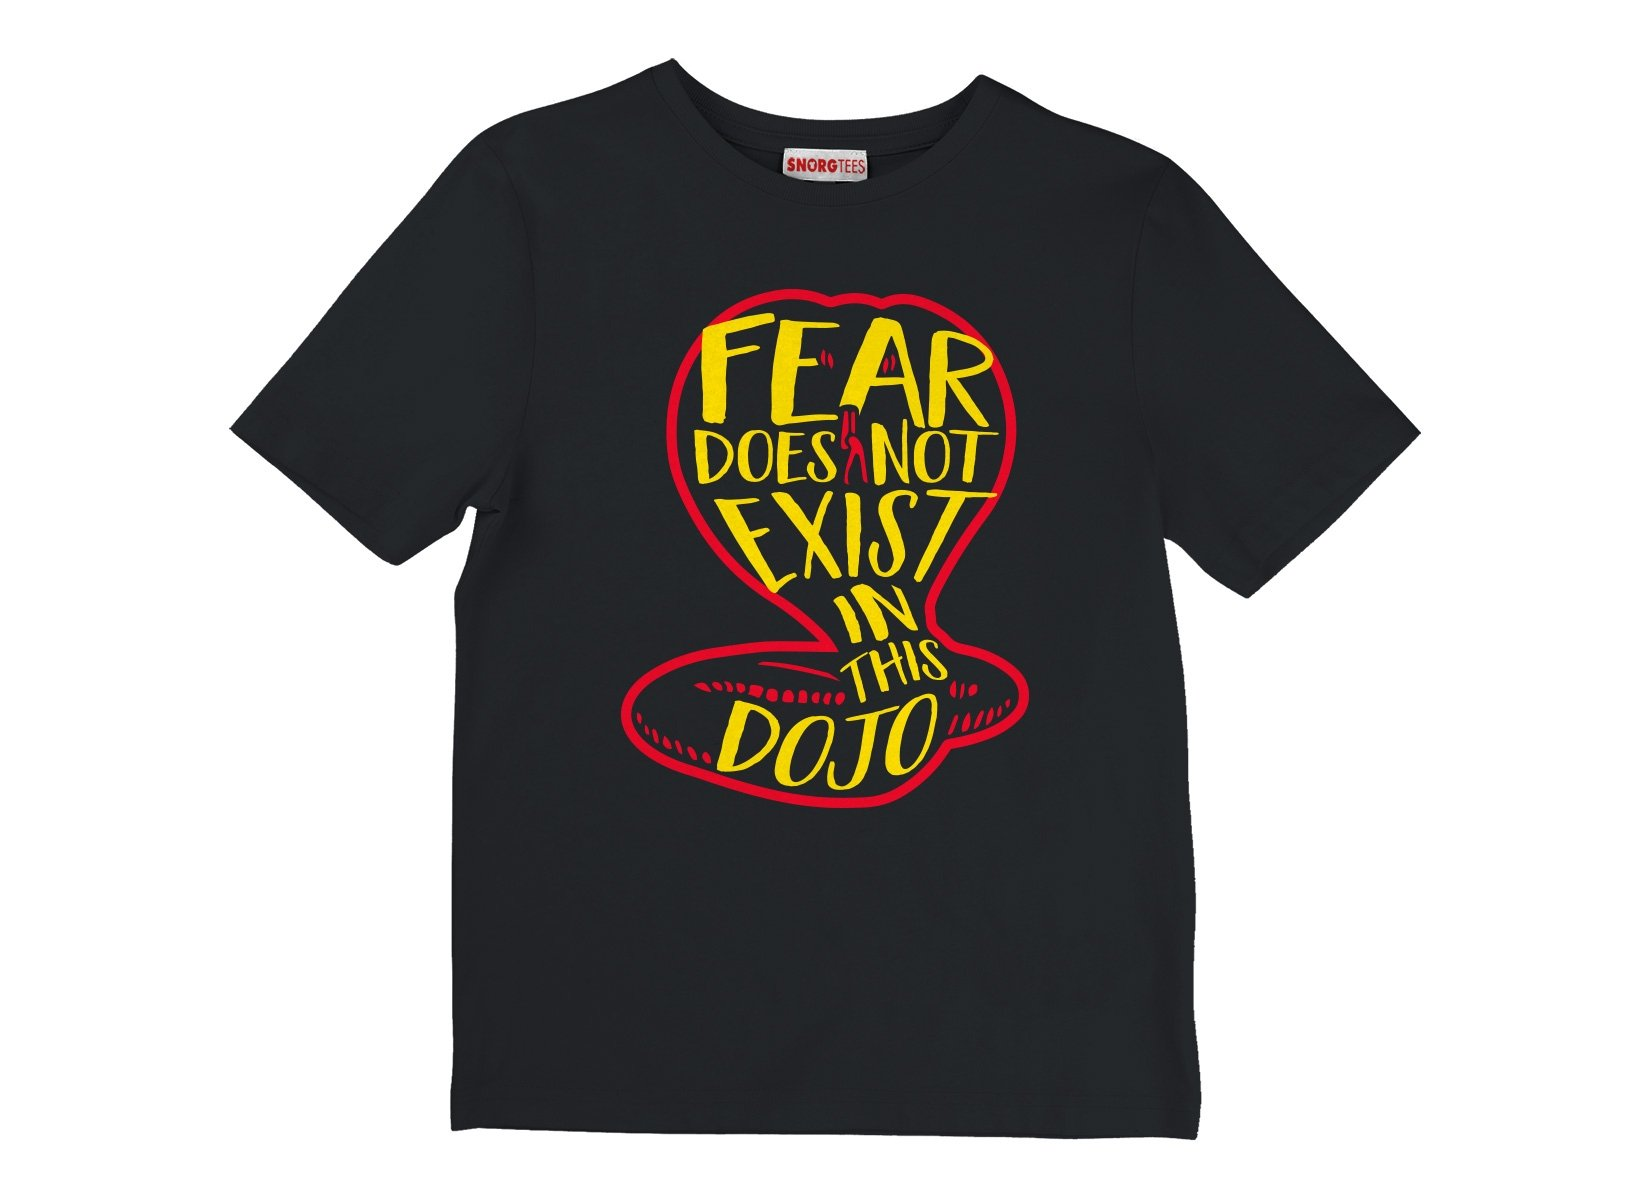 Fear Does Not Exist In This Dojo on Kids T-Shirt